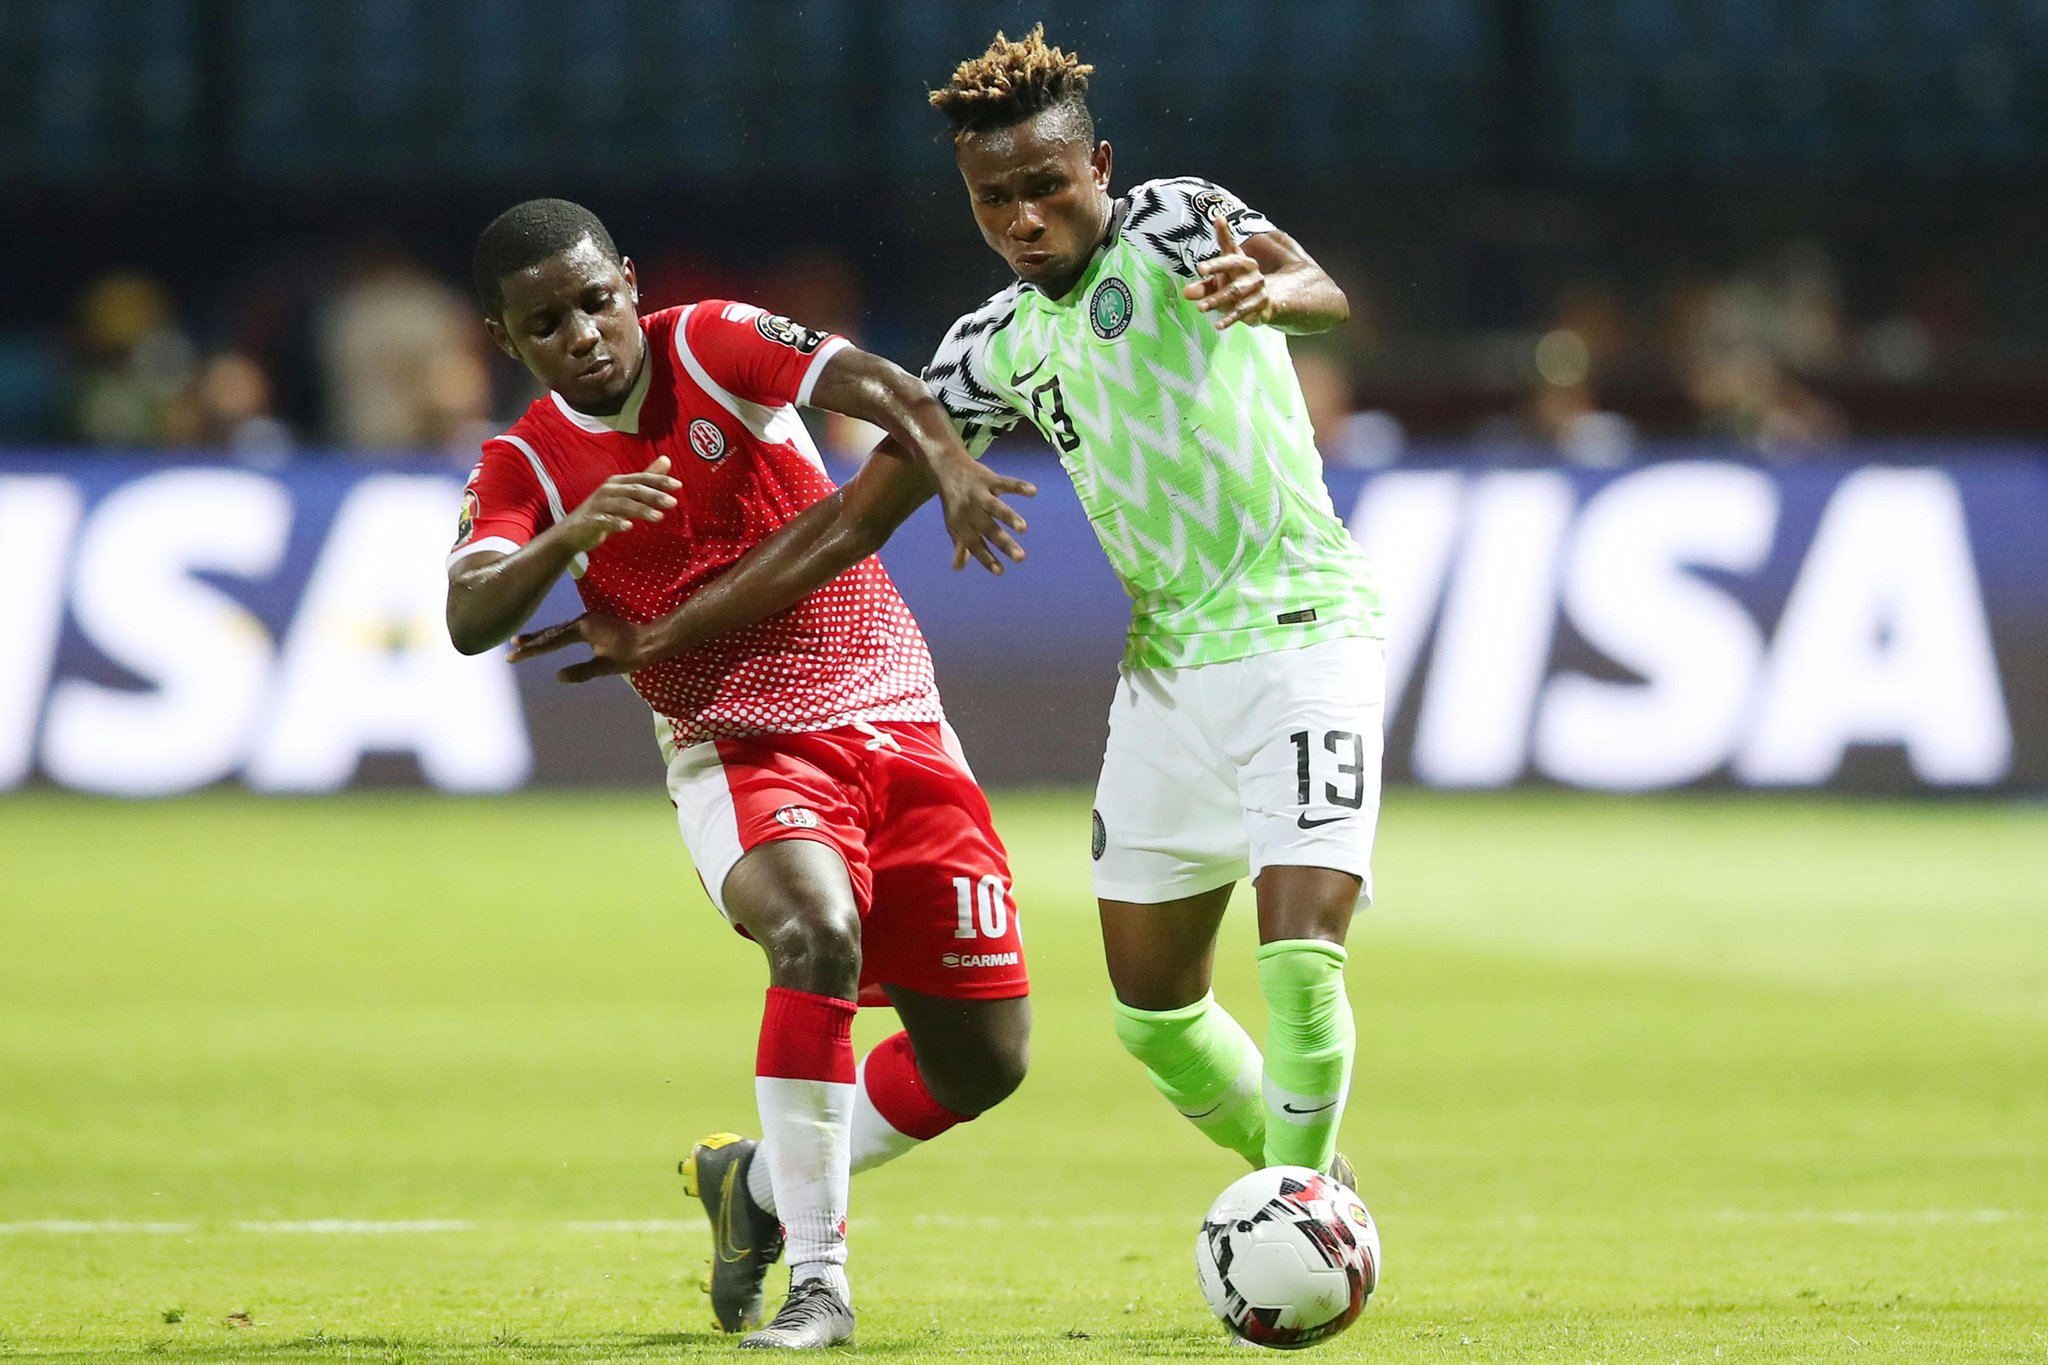 Things we learned from Nigeria vs Burundi